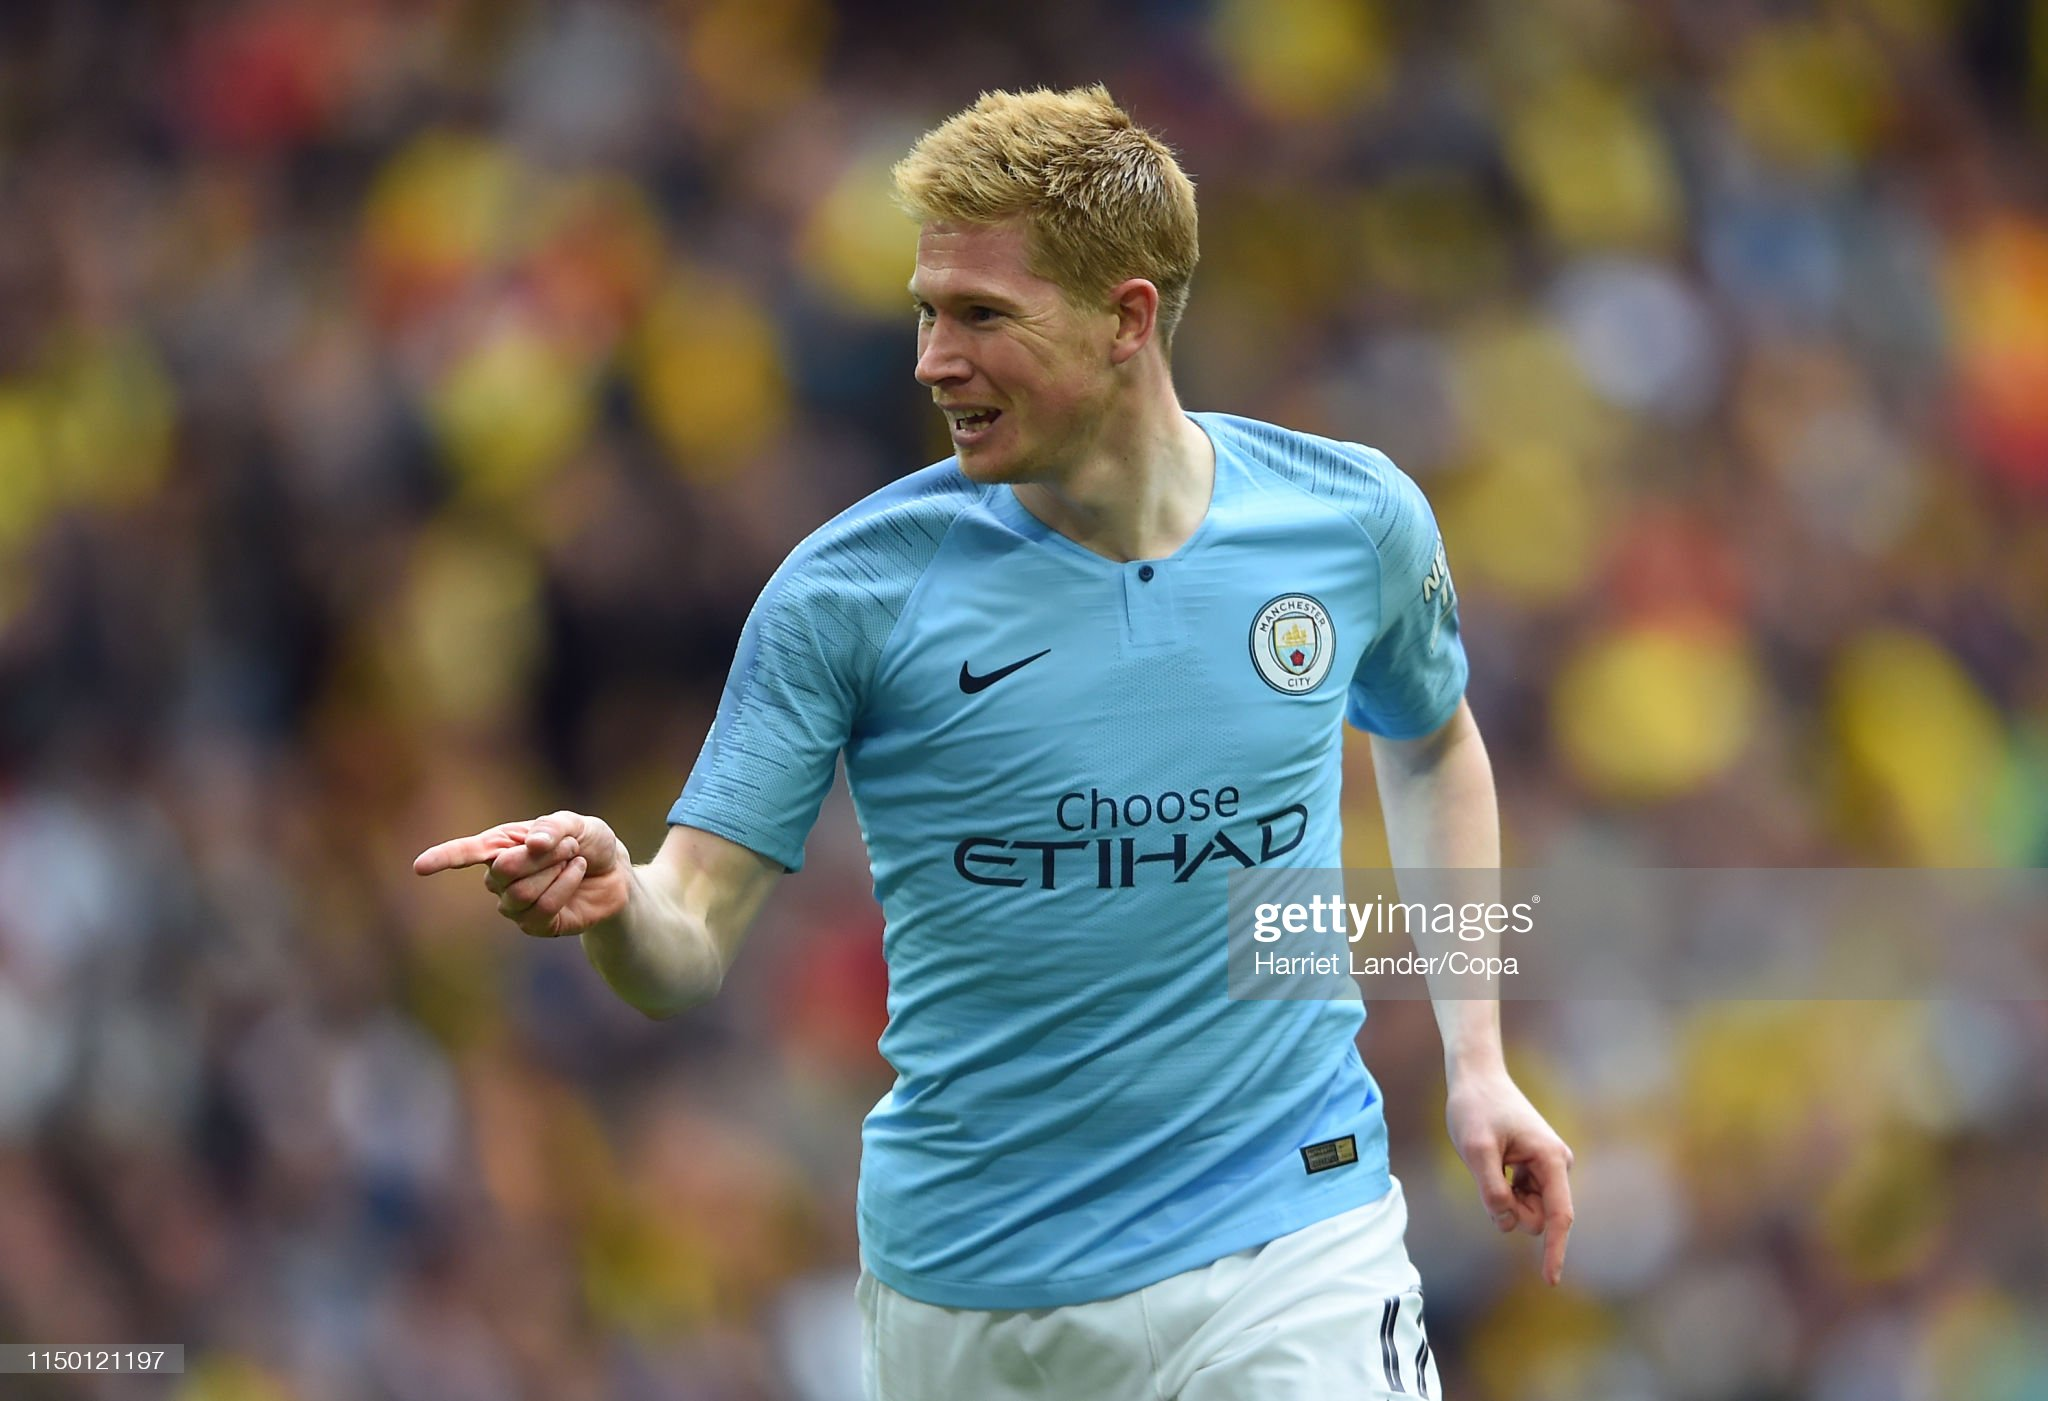 https://media.gettyimages.com/photos/kevin-de-bruyne-of-manchester-city-celebrates-after-scoring-his-teams-picture-id1150121197?s=2048x2048